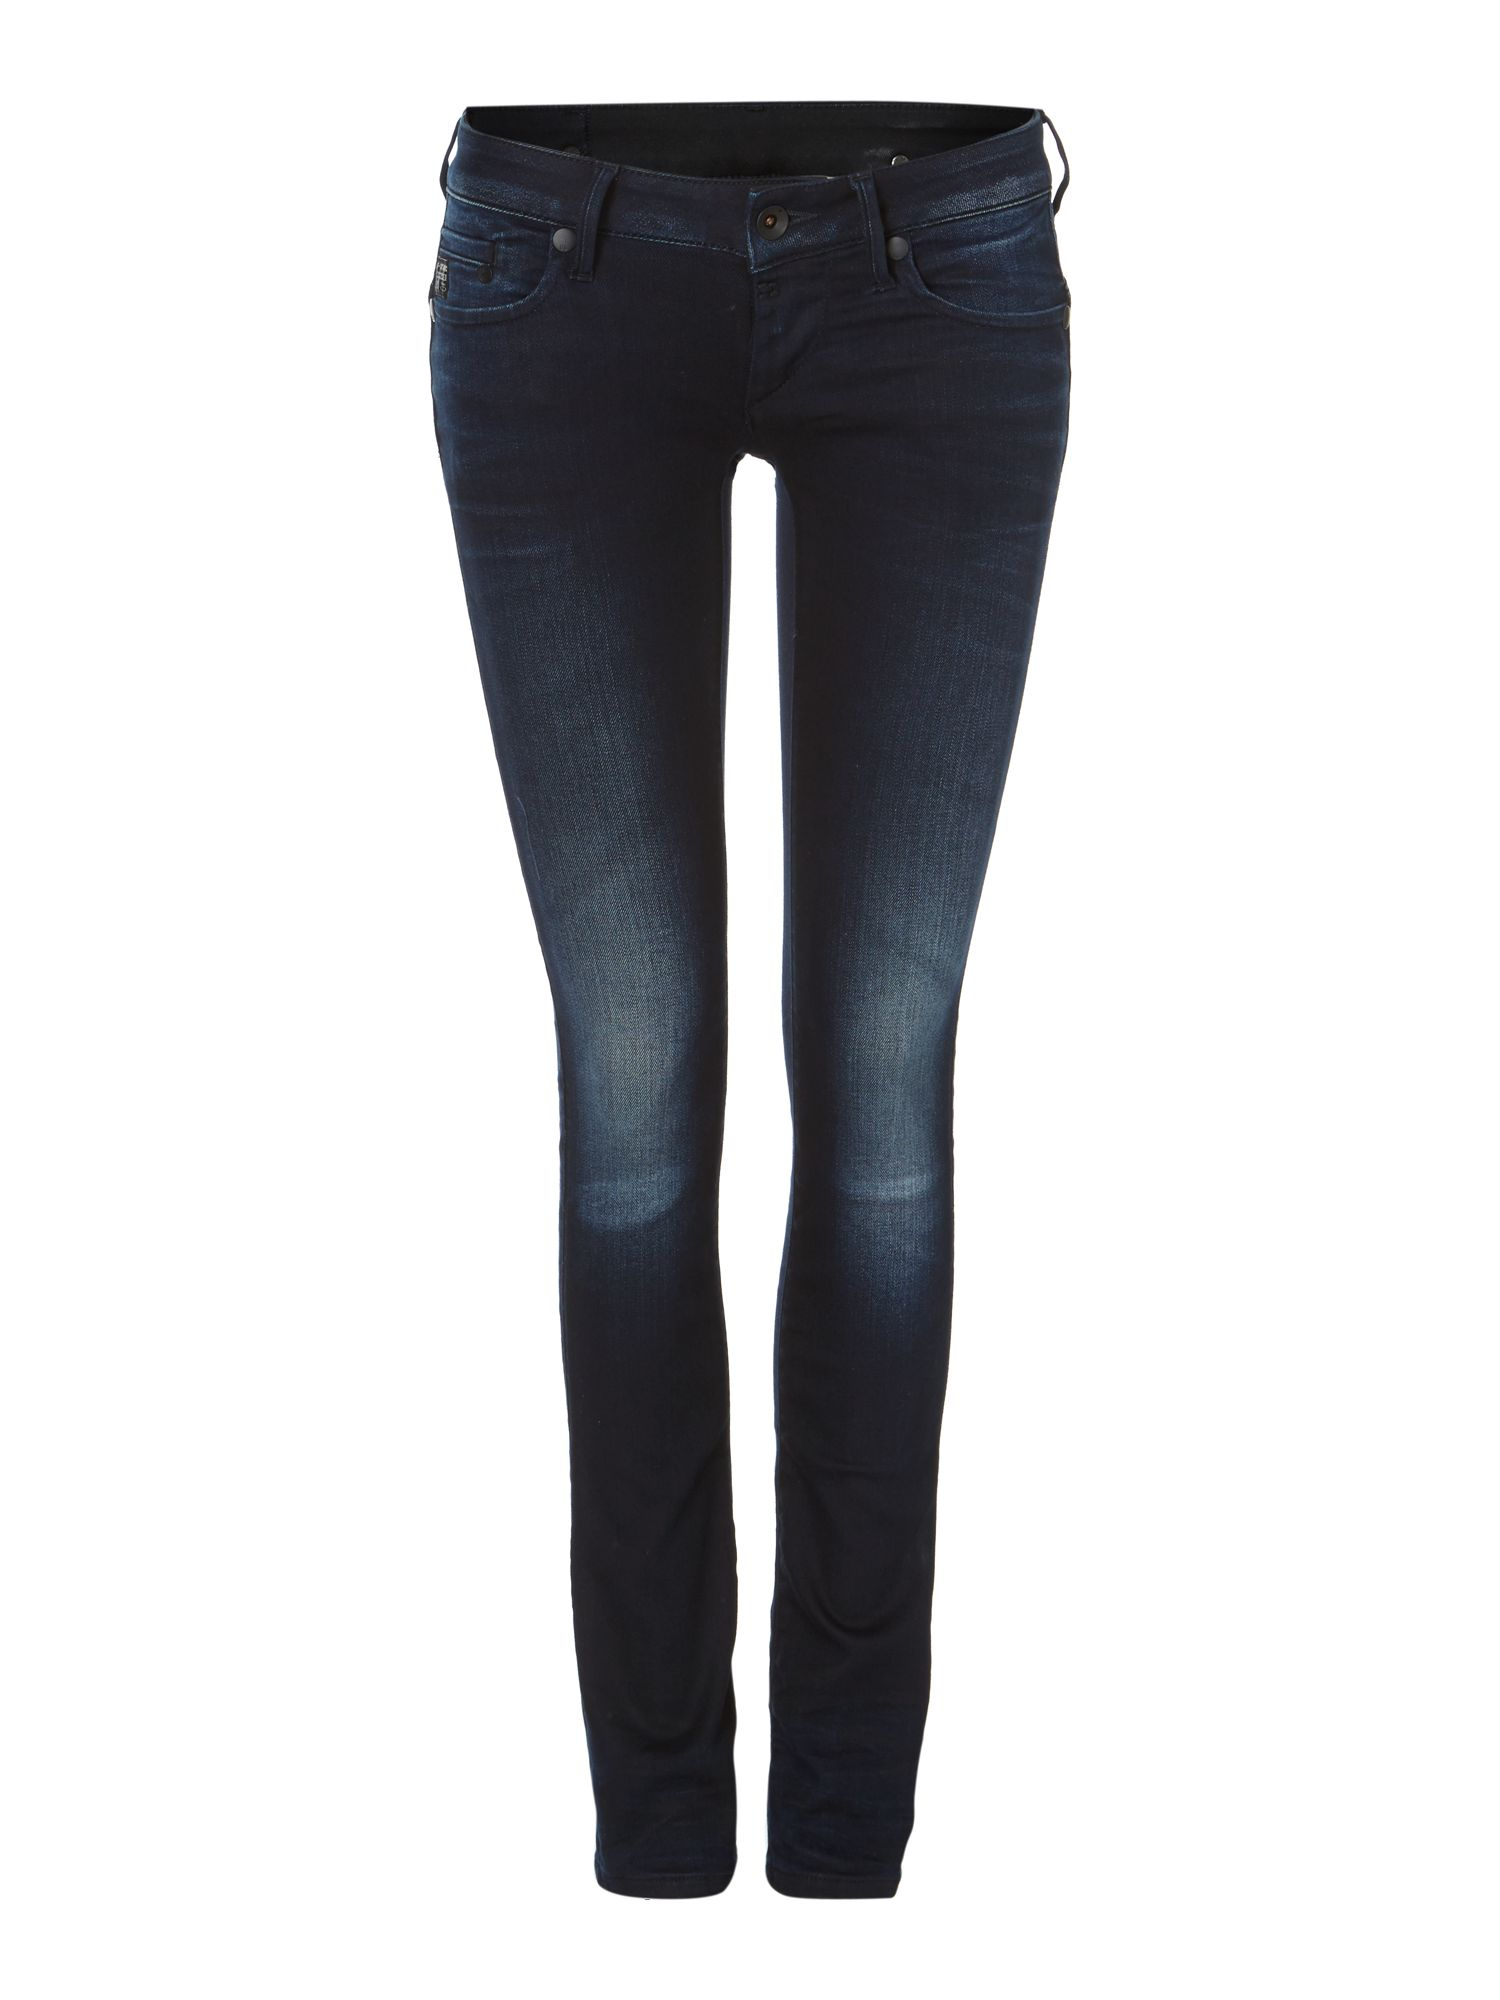 star raw midge straight jeans in slander navy in blue navy lyst. Black Bedroom Furniture Sets. Home Design Ideas